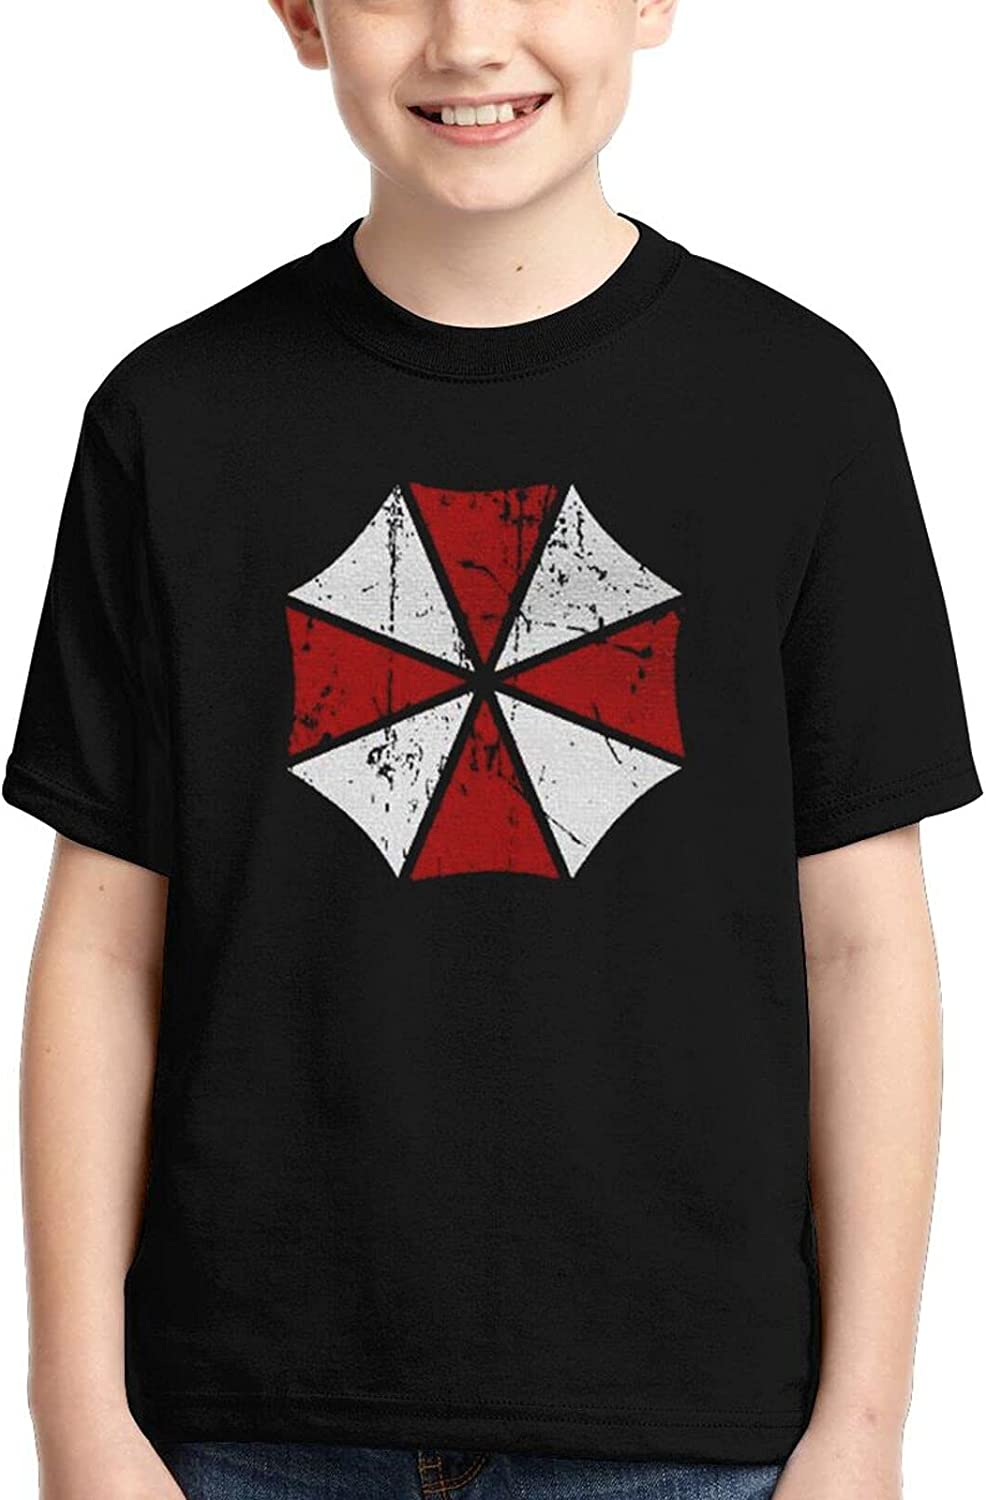 Cfttyvmg 3devil Umbrella Print Youth Shirt, Kids Short Sleeve,Workout and Training Shirts Casual for Boys